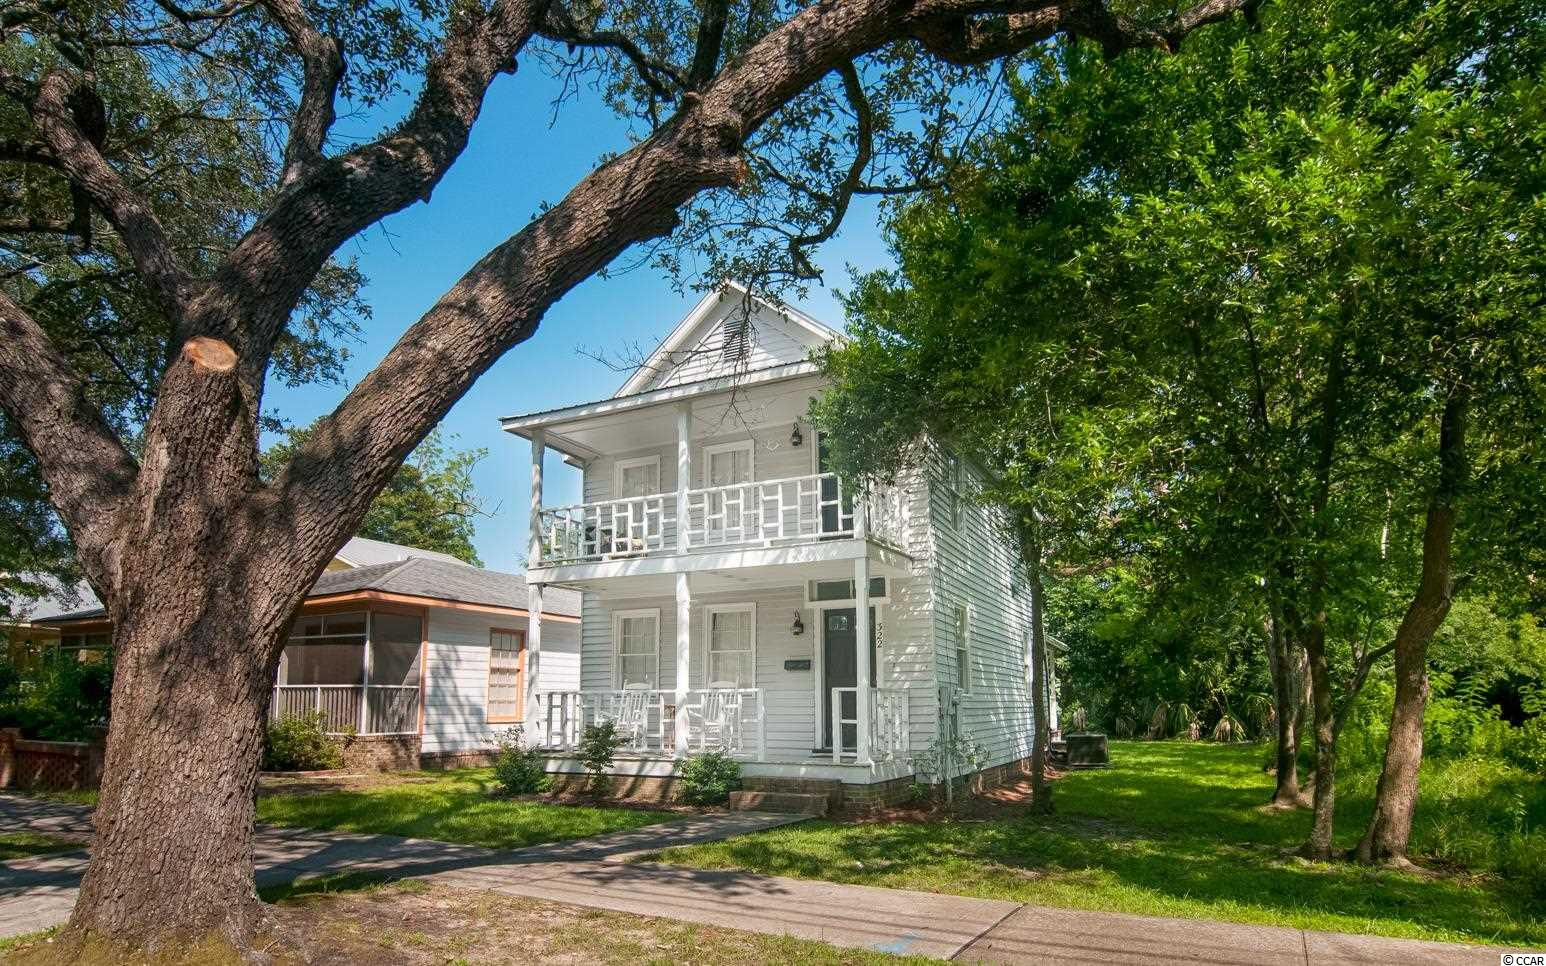 This charming home close to downtown Georgetown is perfect for a starter home or your getaway to Georgetown.  It has done well as a VRBO rental as well. Georgetown host lots of great shopping and Riverfront dining.  The coolest little fishing village is just a few blocks away.